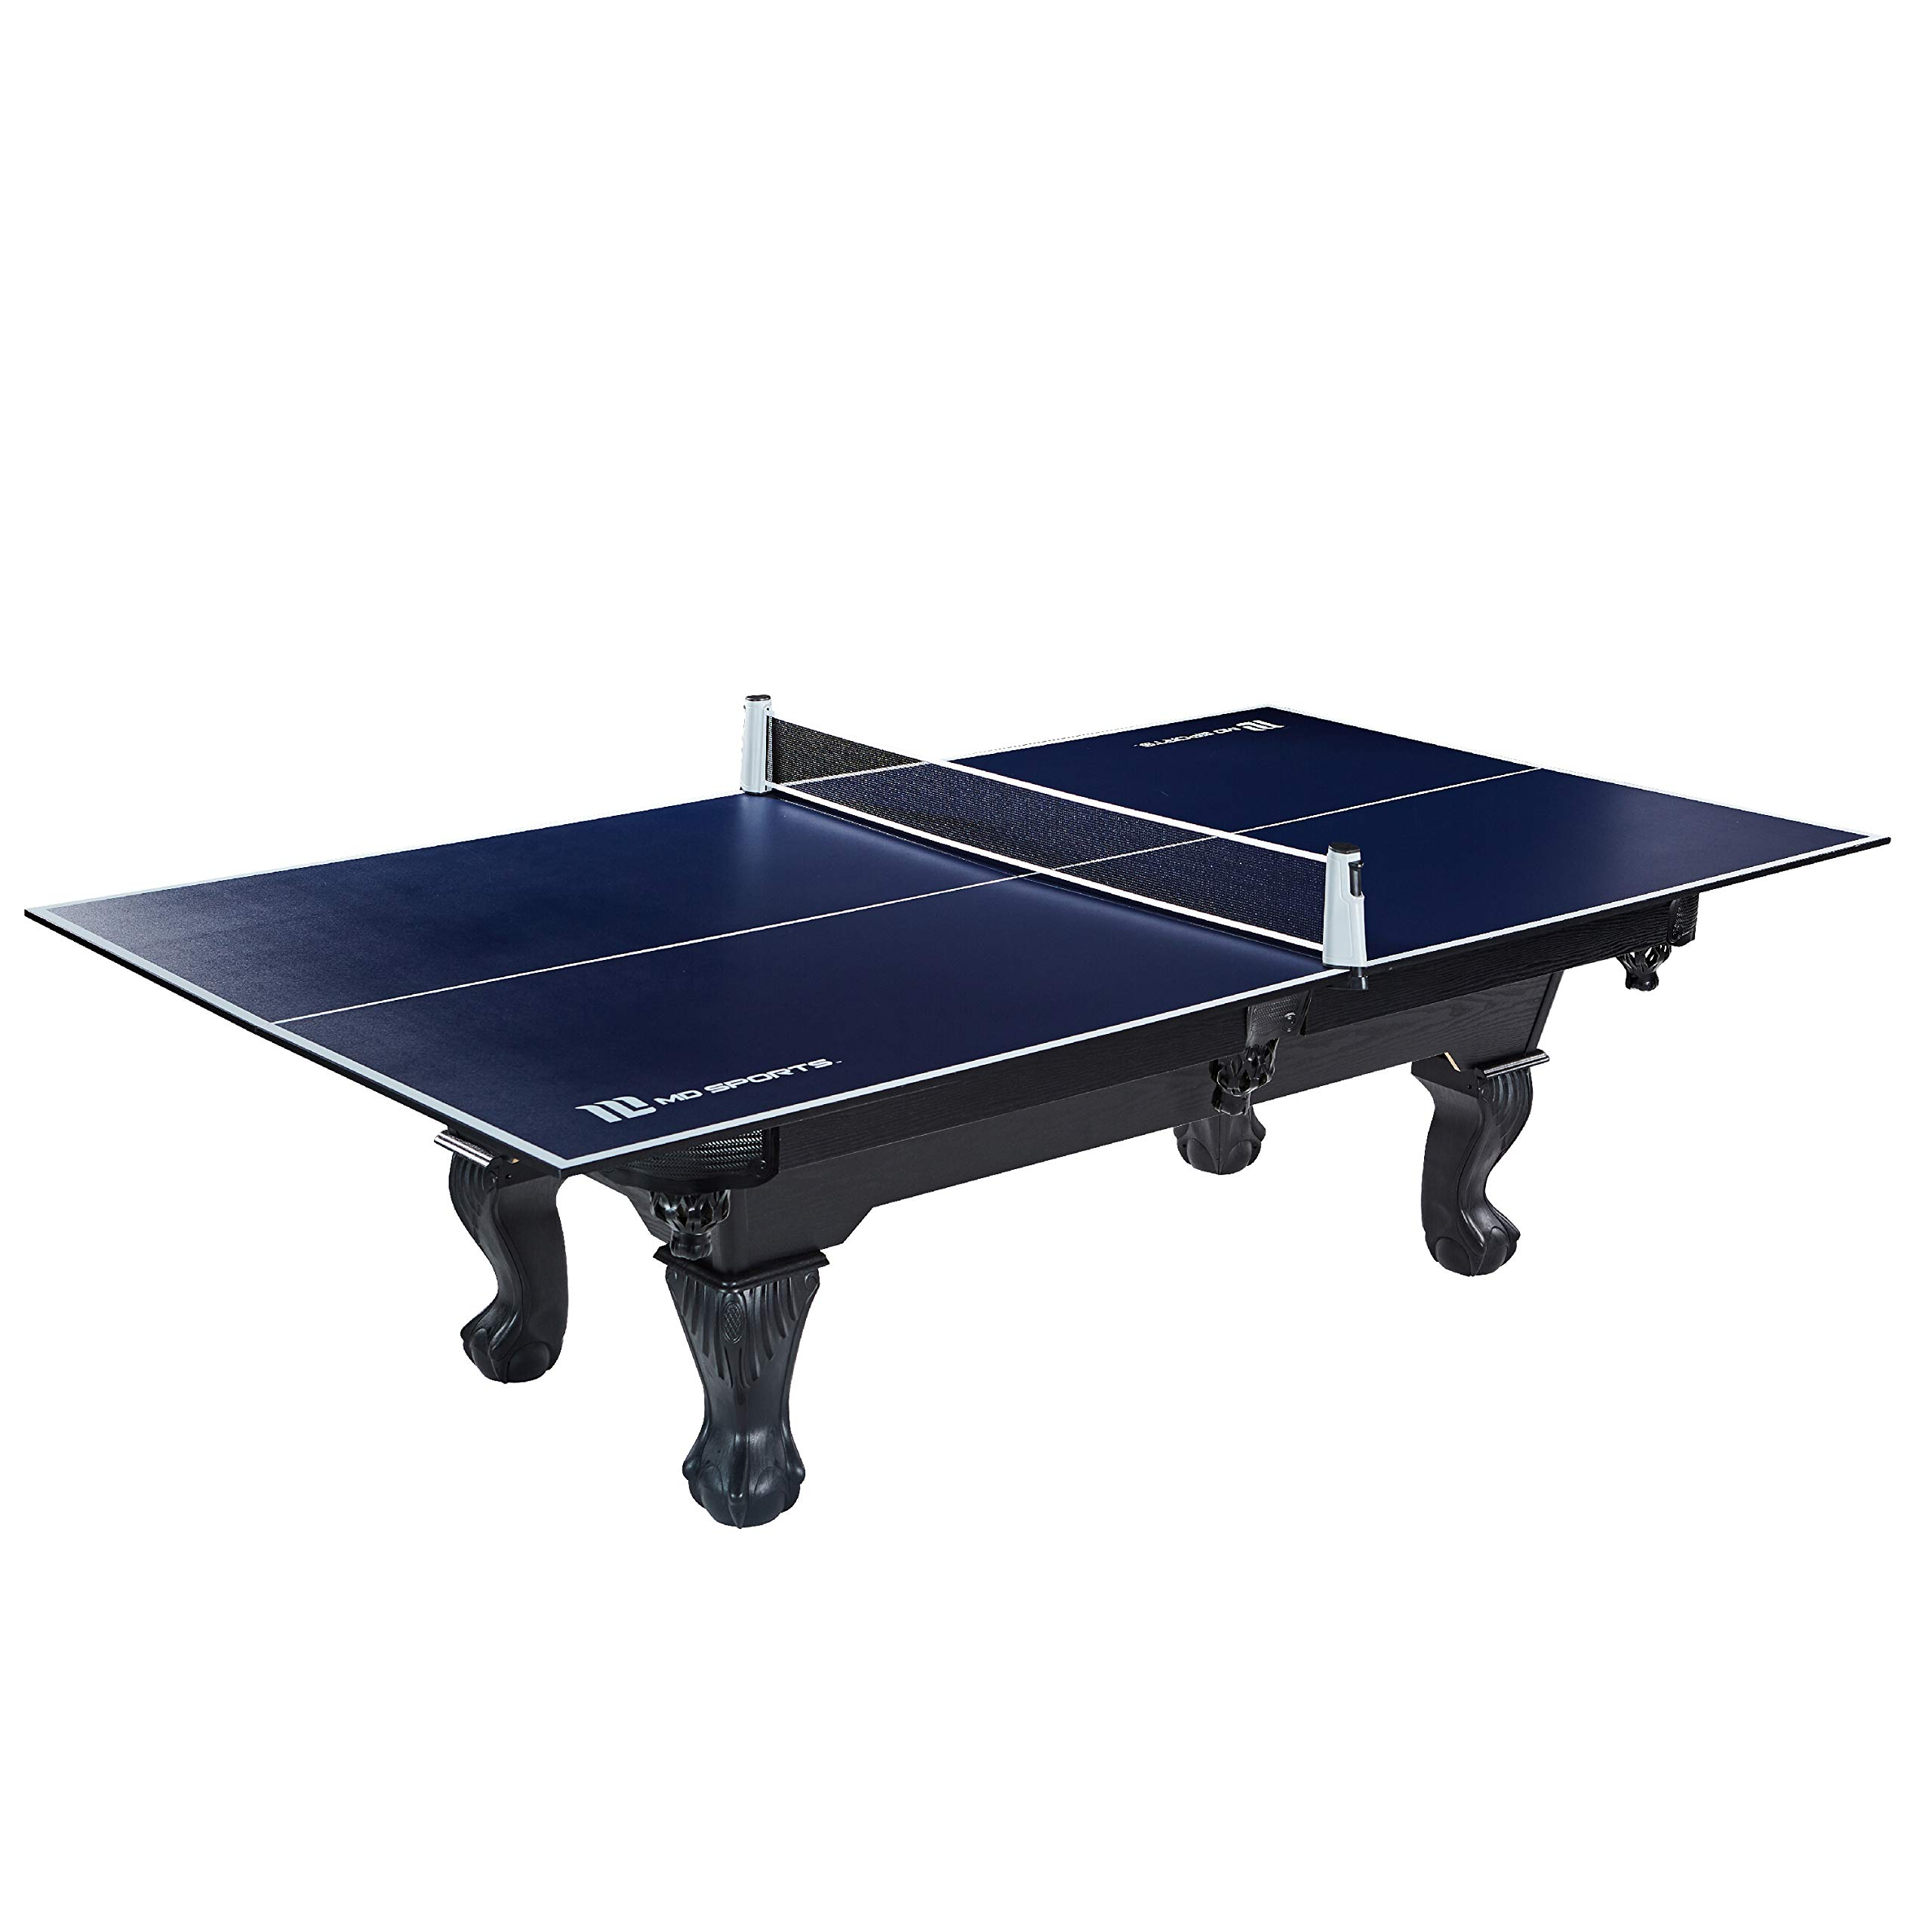 Ping Pong and Table Tennis Conversion Tops, Regulation Size - Folding, Portable Tennis Top with Net - Fits Most Standard Air Hockey and Pool Tables - Premium, Fun, Easy Setup Game Equipment